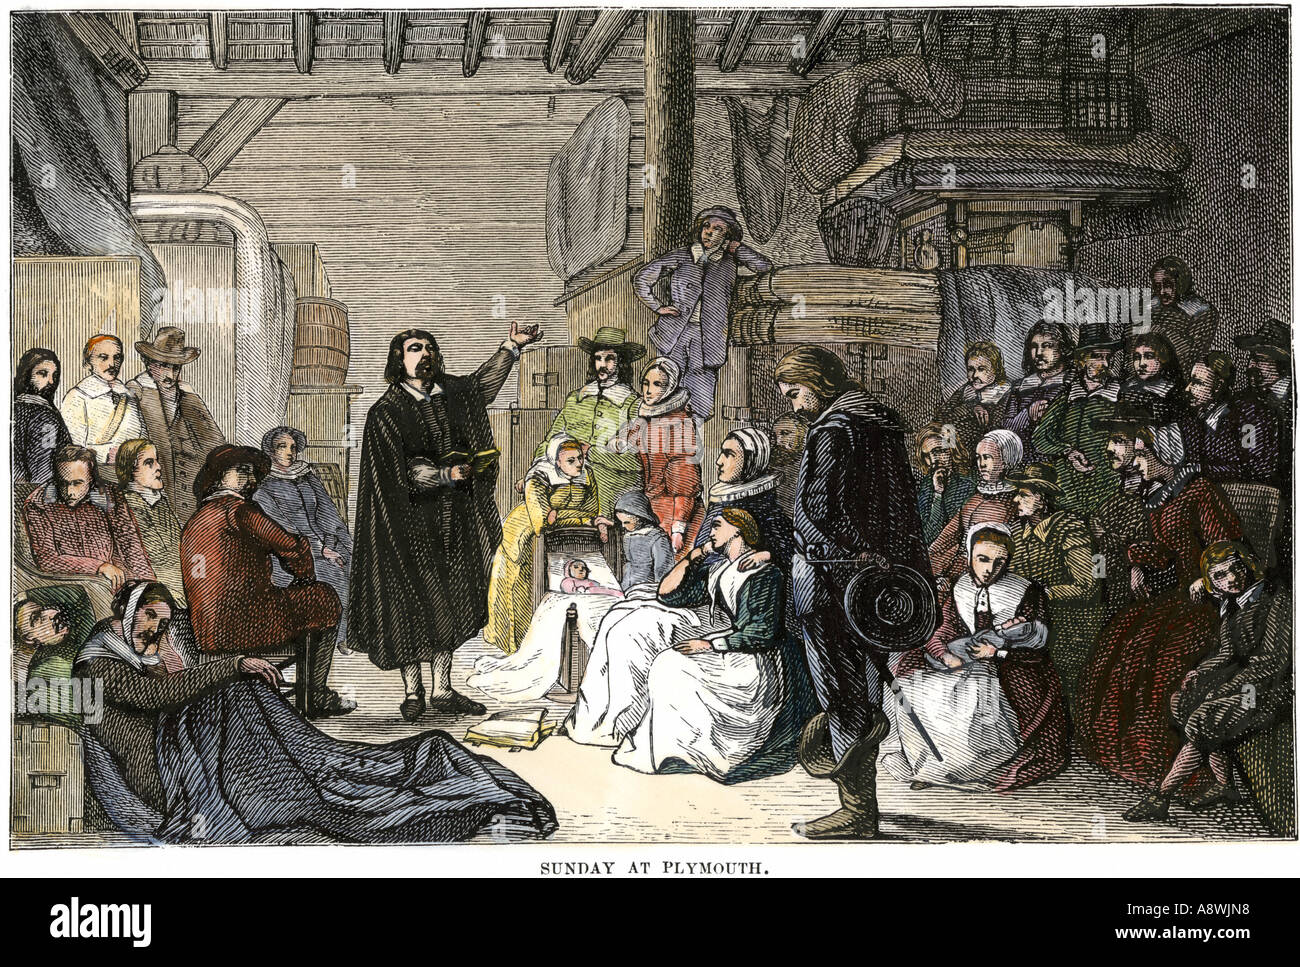 Sunday worship service at Plymouth Colony Massachusetts 1620s. Hand-colored woodcut - Stock Image